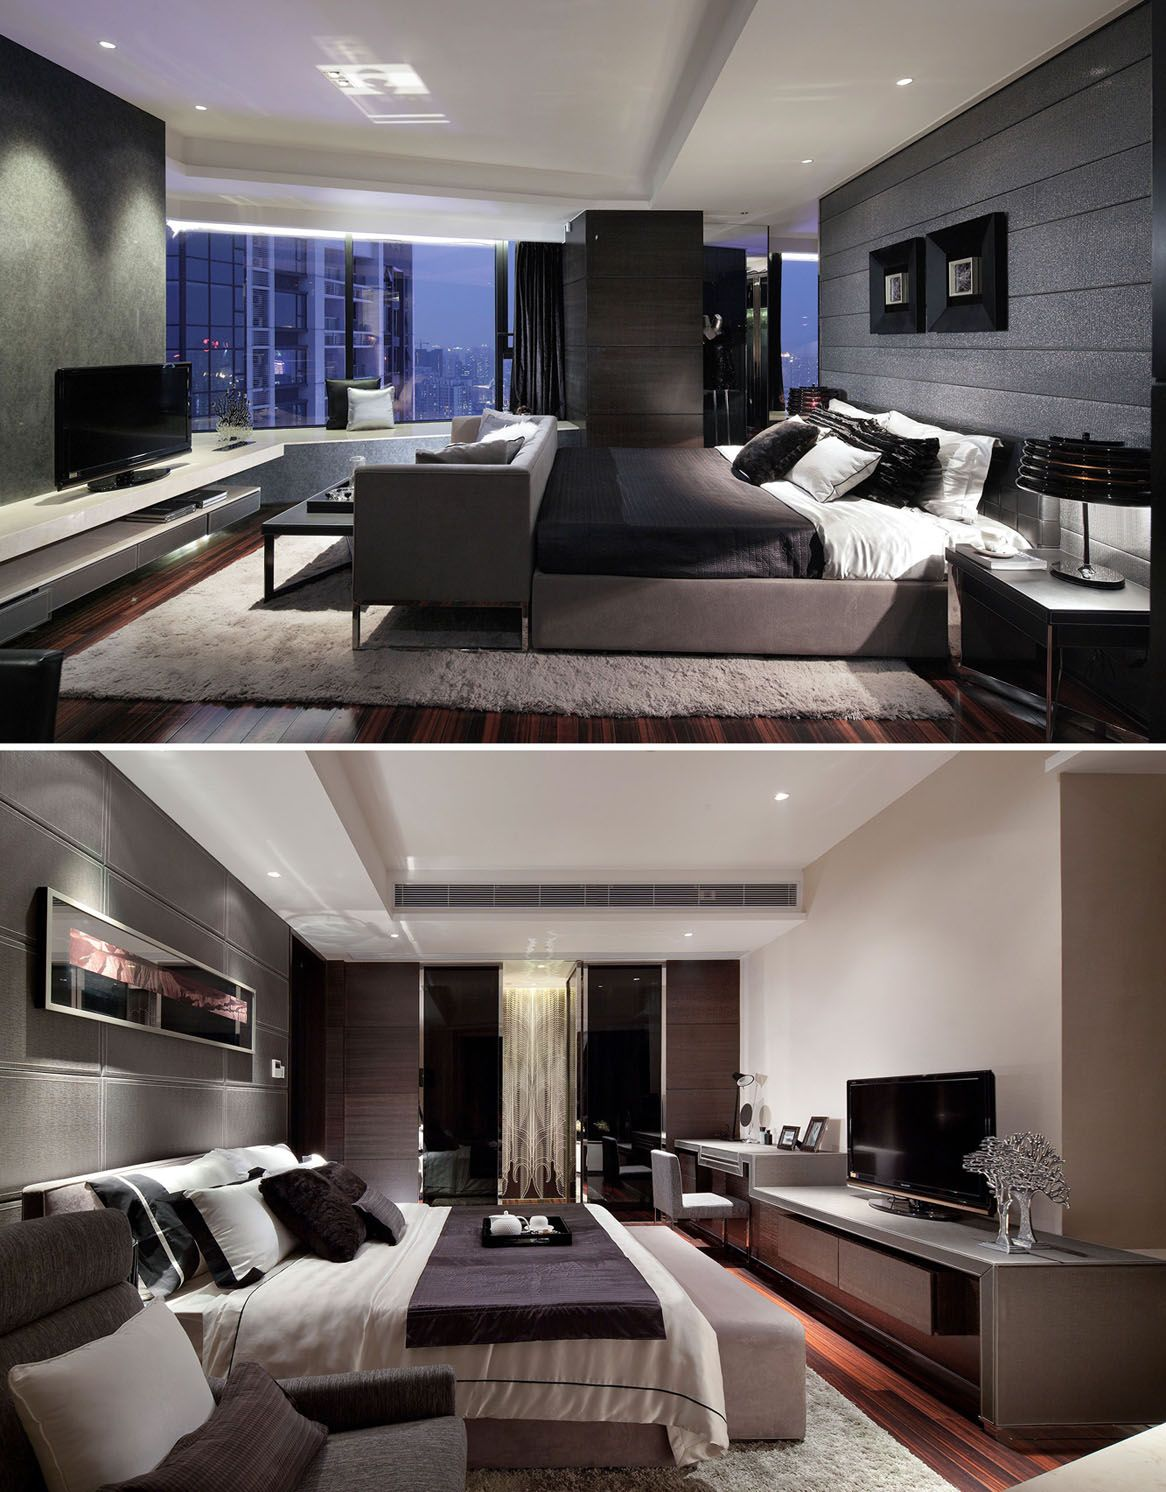 Hotel Bedroom: Love The Hotel Chic Look Of These Bedrooms. Luxury Bedroom